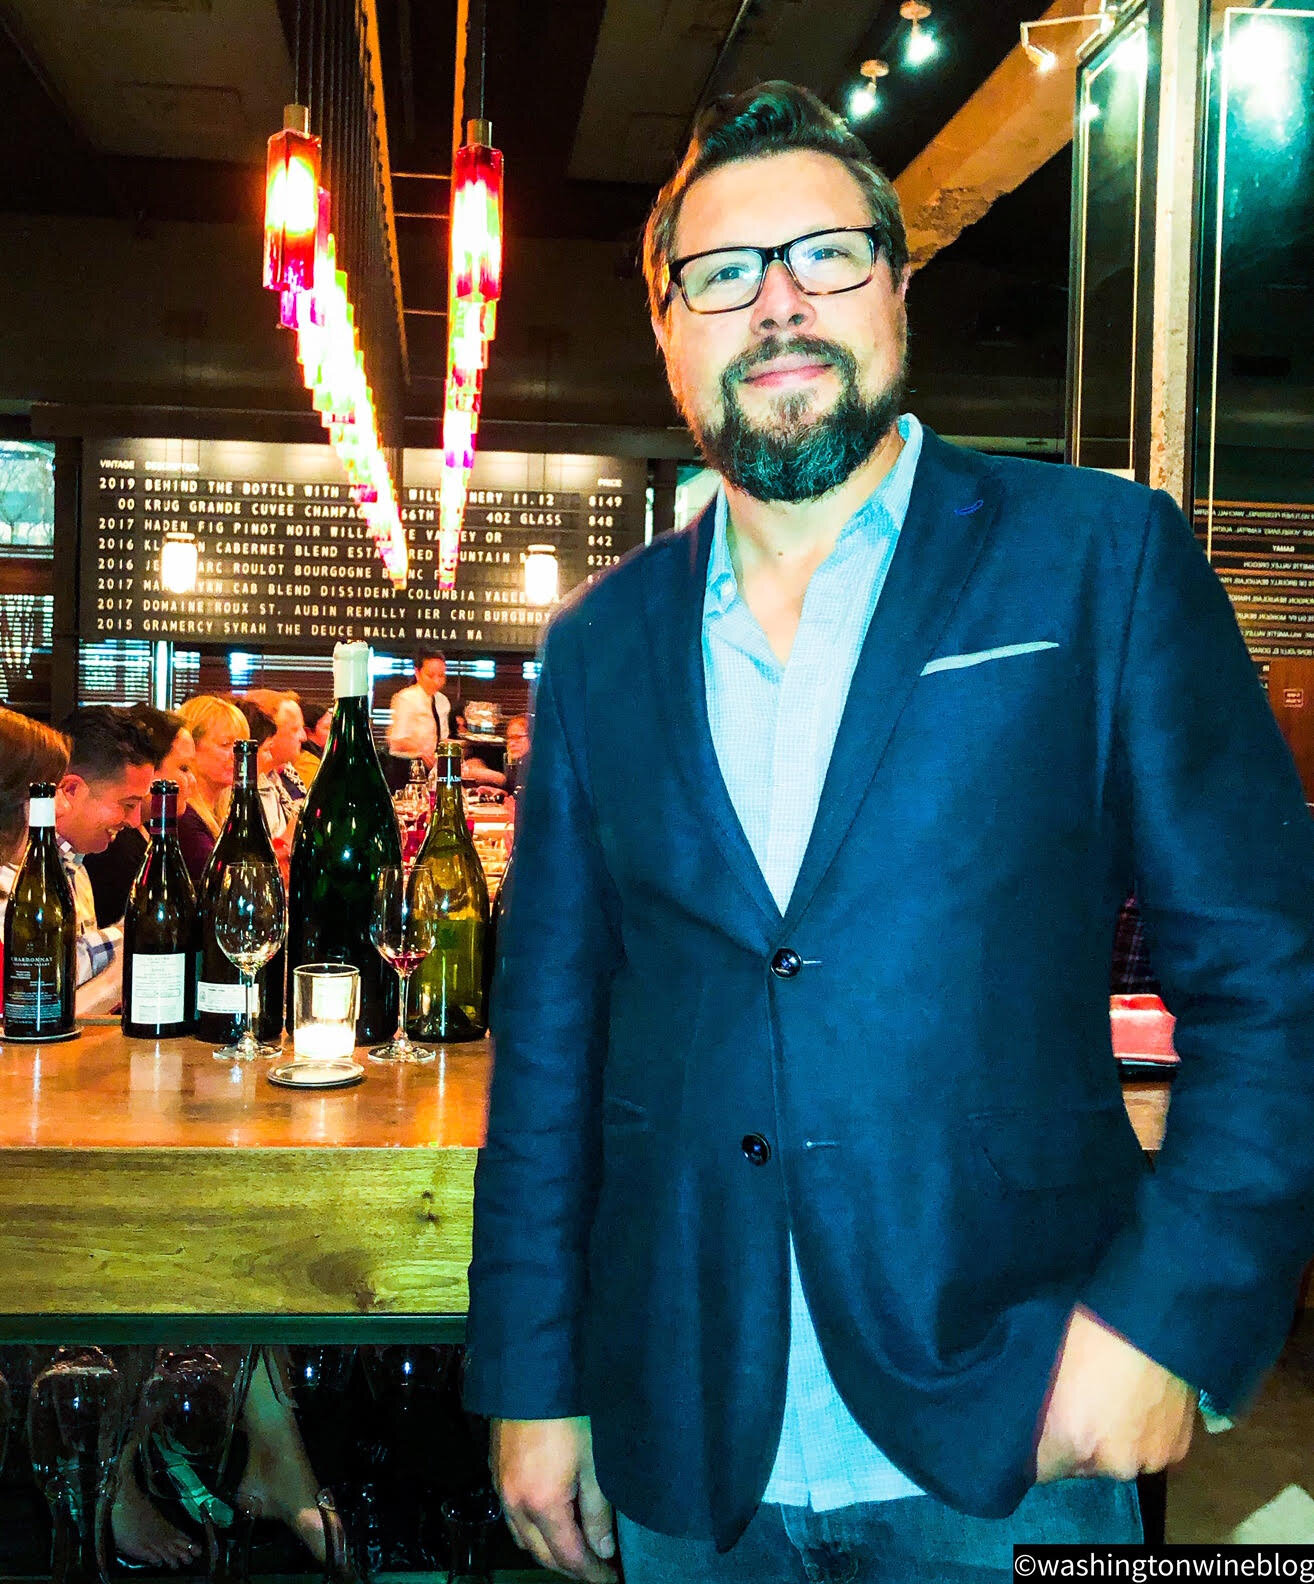 Great photo here of one of the outstanding wine directors in the Pacific Northwest, advanced sommelier and winemaker extraordinaire, Jeff Lindsay-Thorsen.